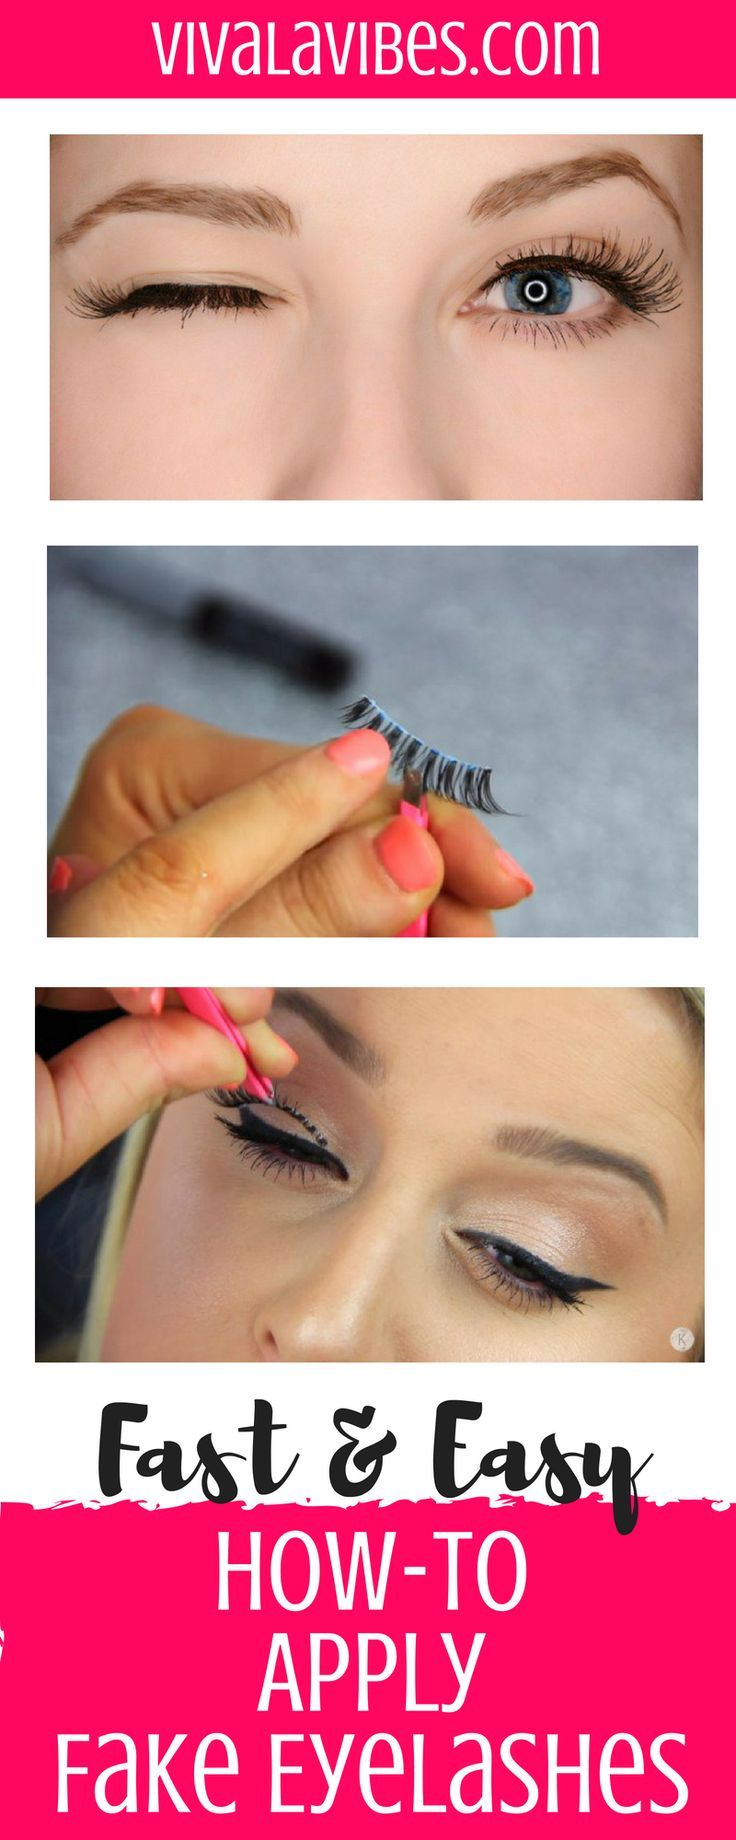 How To Apply Fake Eyelashes Fast Easy Female Bloggers Free For